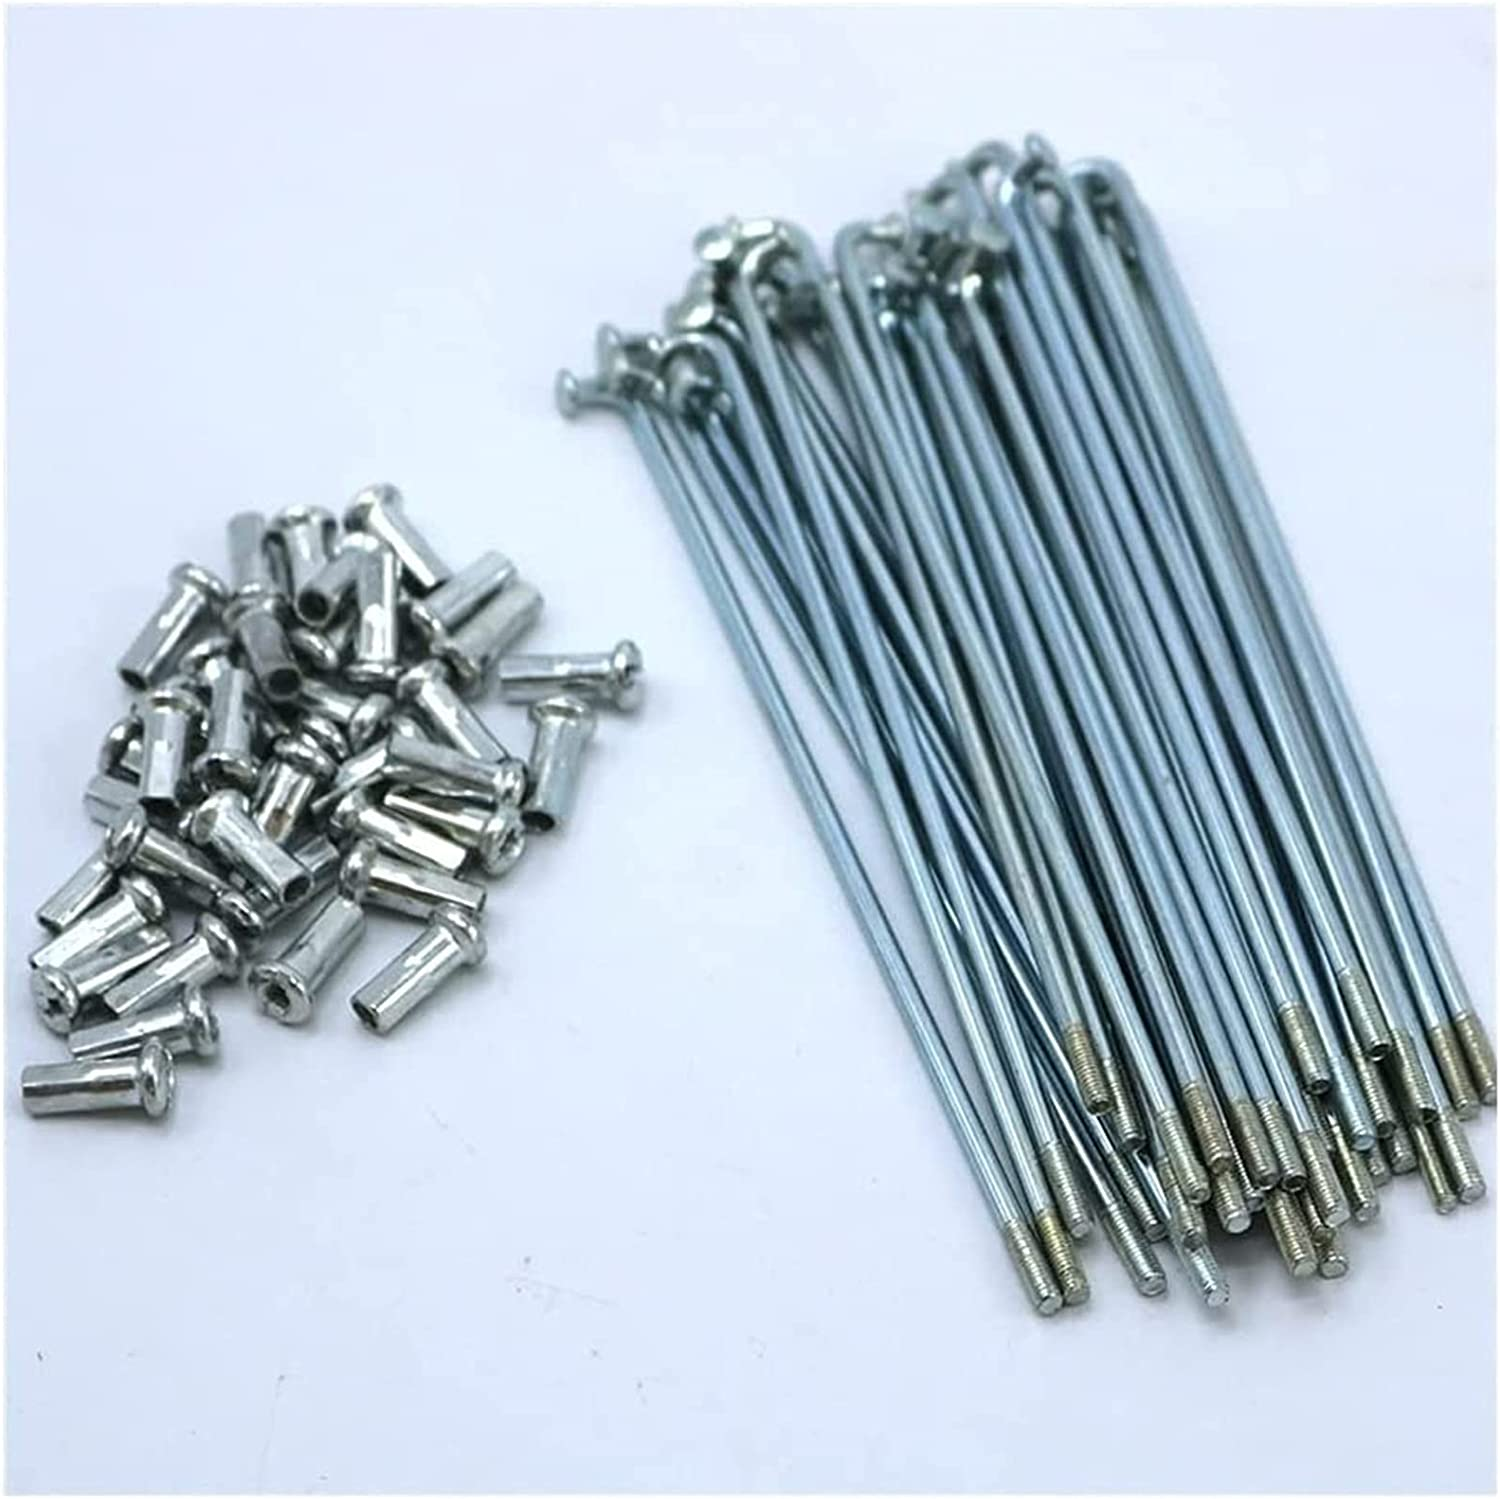 Japan's largest assortment Sales results No. 1 Bianlang Bike Spokes Electric Bicycle Length 2.5mm 12G Diameter